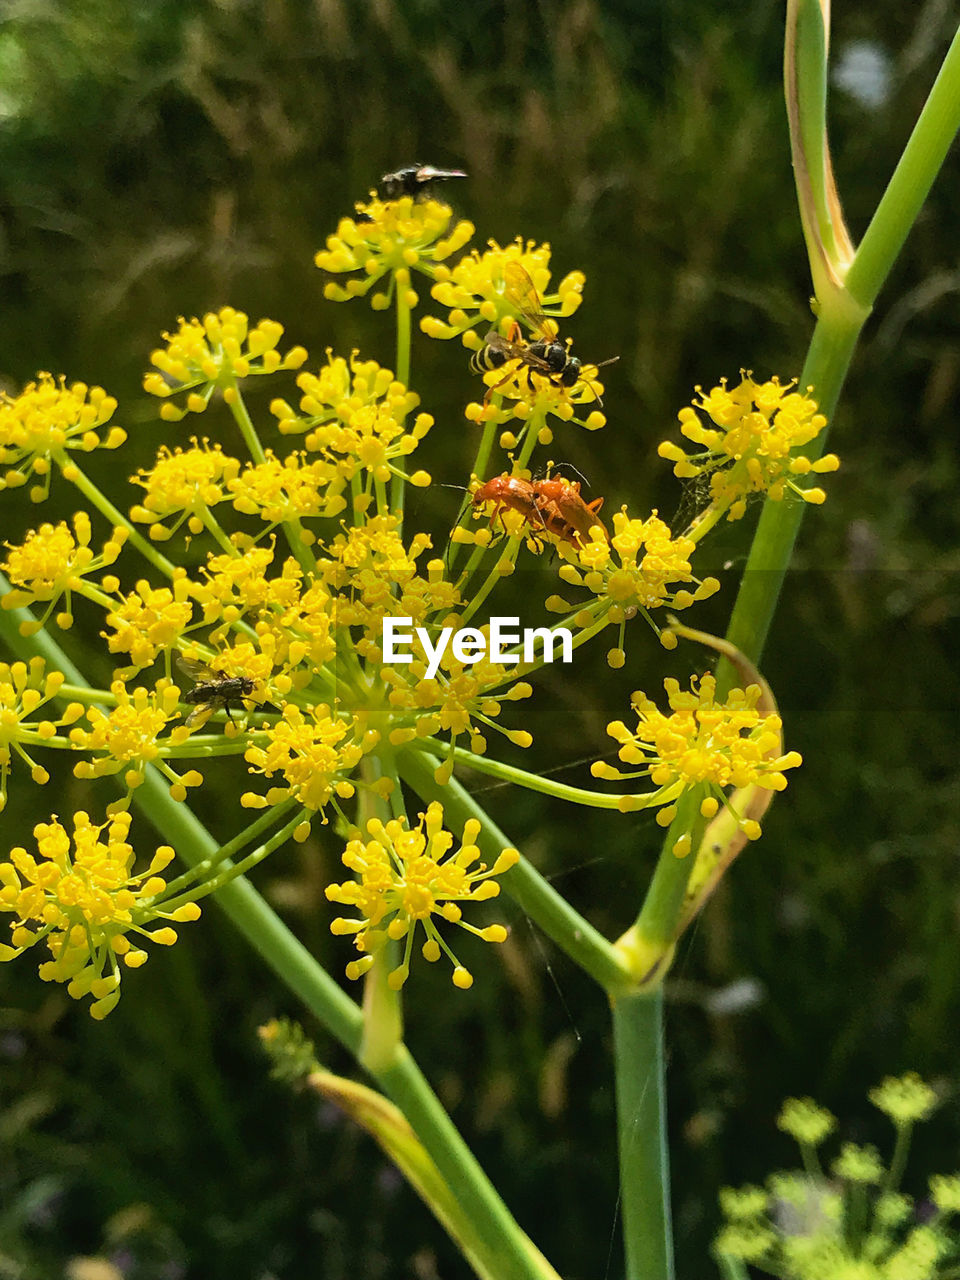 flowering plant, flower, plant, growth, freshness, fragility, vulnerability, beauty in nature, yellow, close-up, focus on foreground, flower head, nature, petal, day, inflorescence, no people, field, outdoors, selective focus, pollen